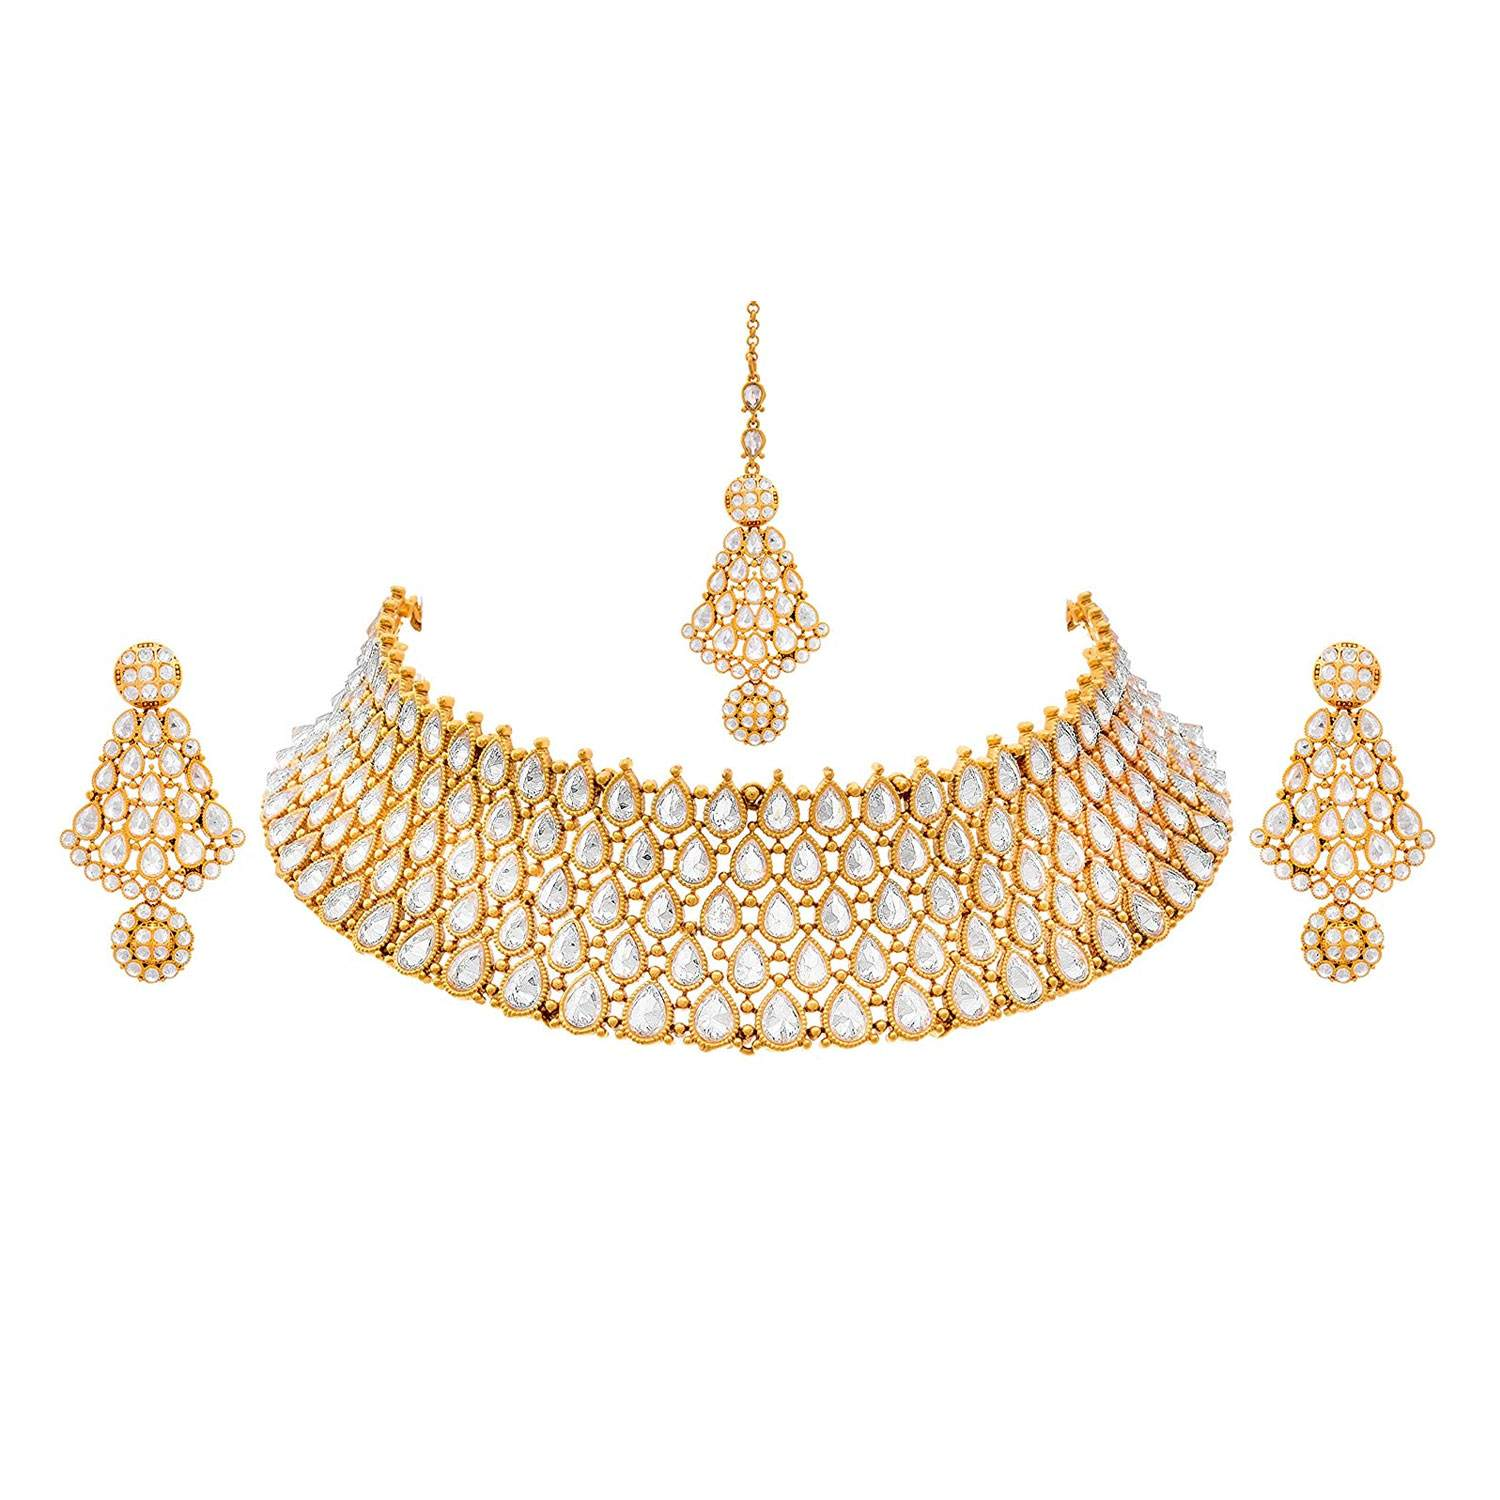 JFL - Traditional Ethnic One Gram Gold Plated Polki Diamond Kundan Designer Necklace Set with Earrings for Women & Girls